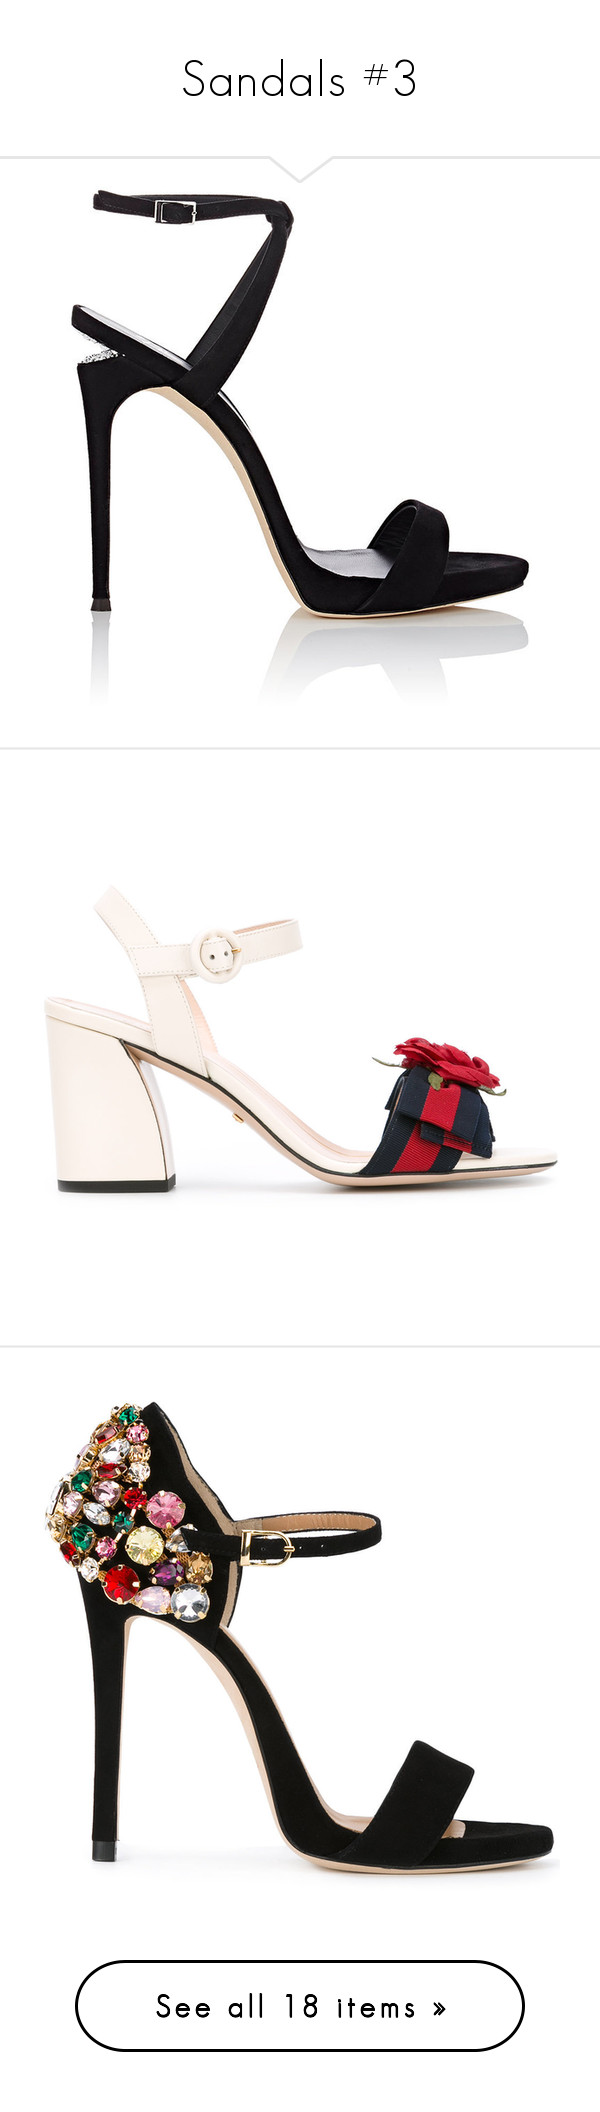 """""""Sandals #3"""" by ngkhhuynstyle ❤ liked on Polyvore featuring shoes, sandals, heels, shoes - heels, zanotti, black, embellished sandals, ankle strap sandals, black stilettos and black criss cross sandals"""